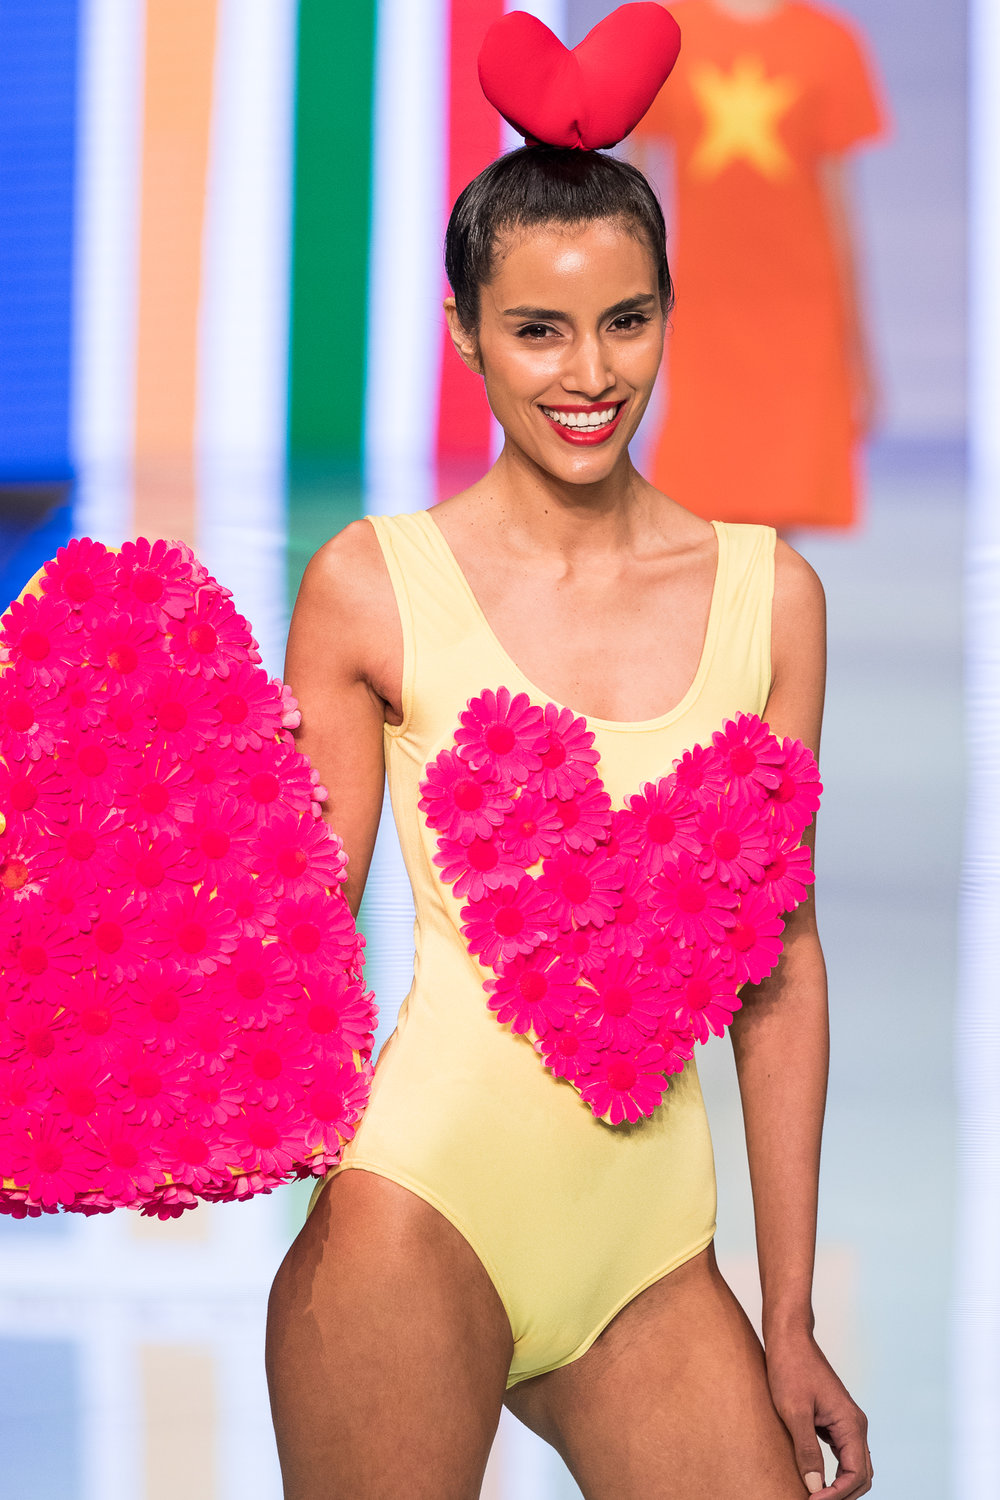 agatha ruiz de la prada heated things up at miami fashion week mikhail veter. Black Bedroom Furniture Sets. Home Design Ideas